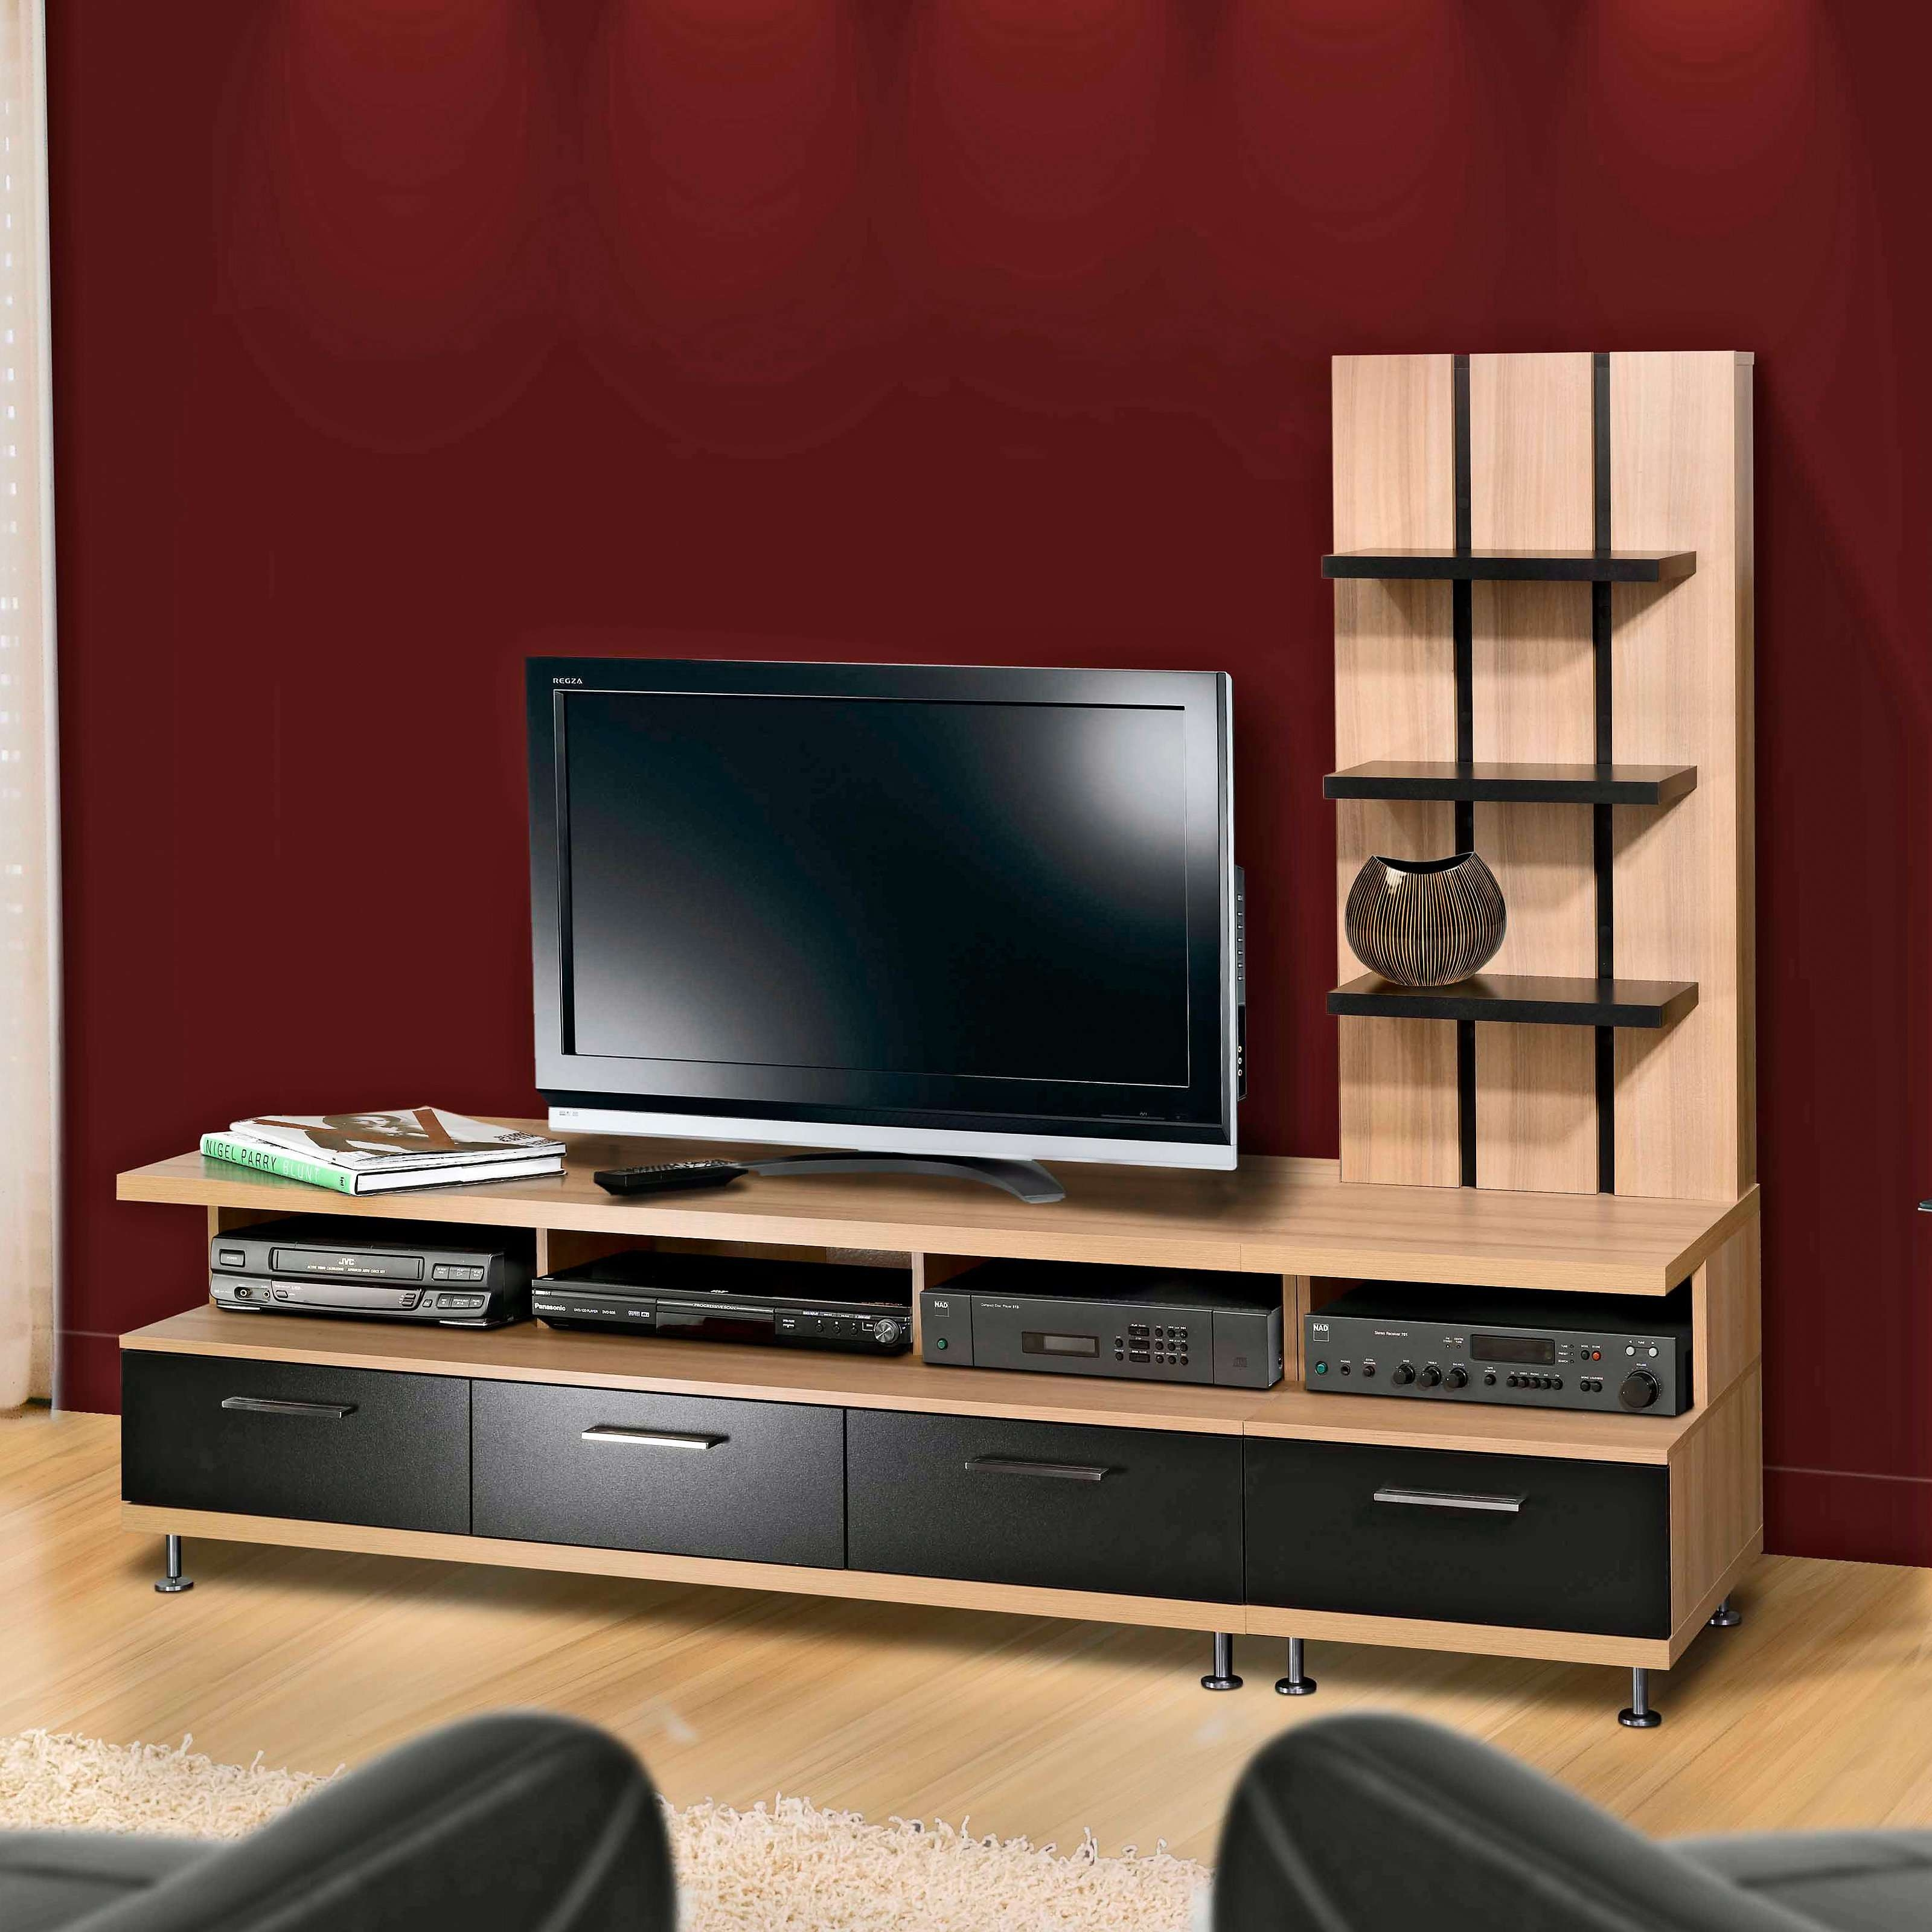 Media Stands For Flat Screen Tvs Tv Wall Units Screens Elegant And Inside Contemporary Tv Stands For Flat Screens (View 3 of 20)